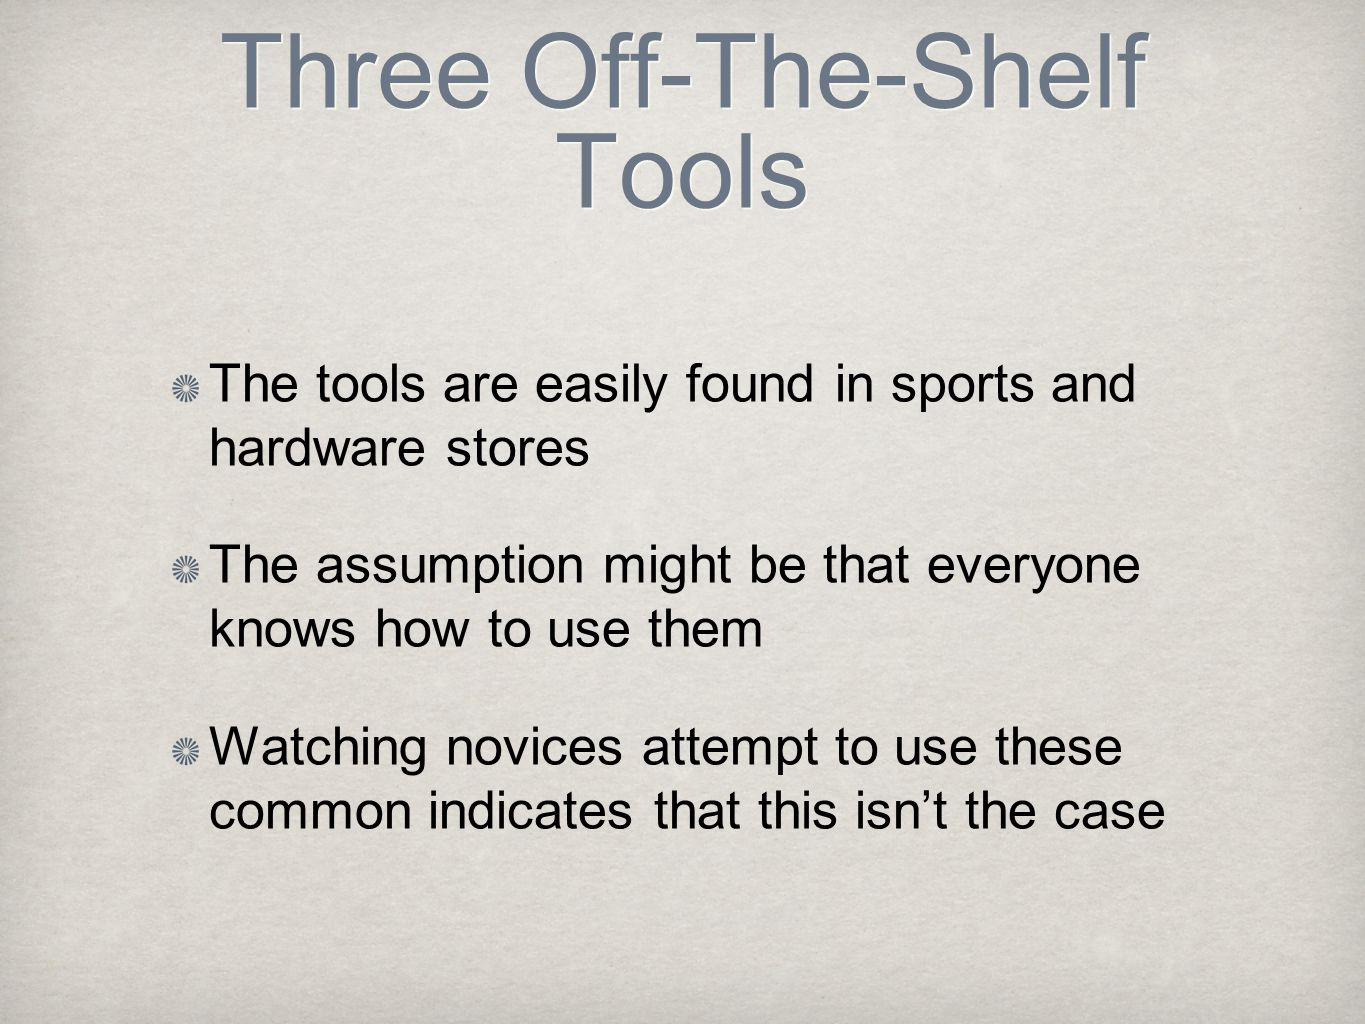 Three Off-The-Shelf Tools The tools are easily found in sports and hardware stores The assumption might be that everyone knows how to use them Watching novices attempt to use these common indicates that this isn't the case